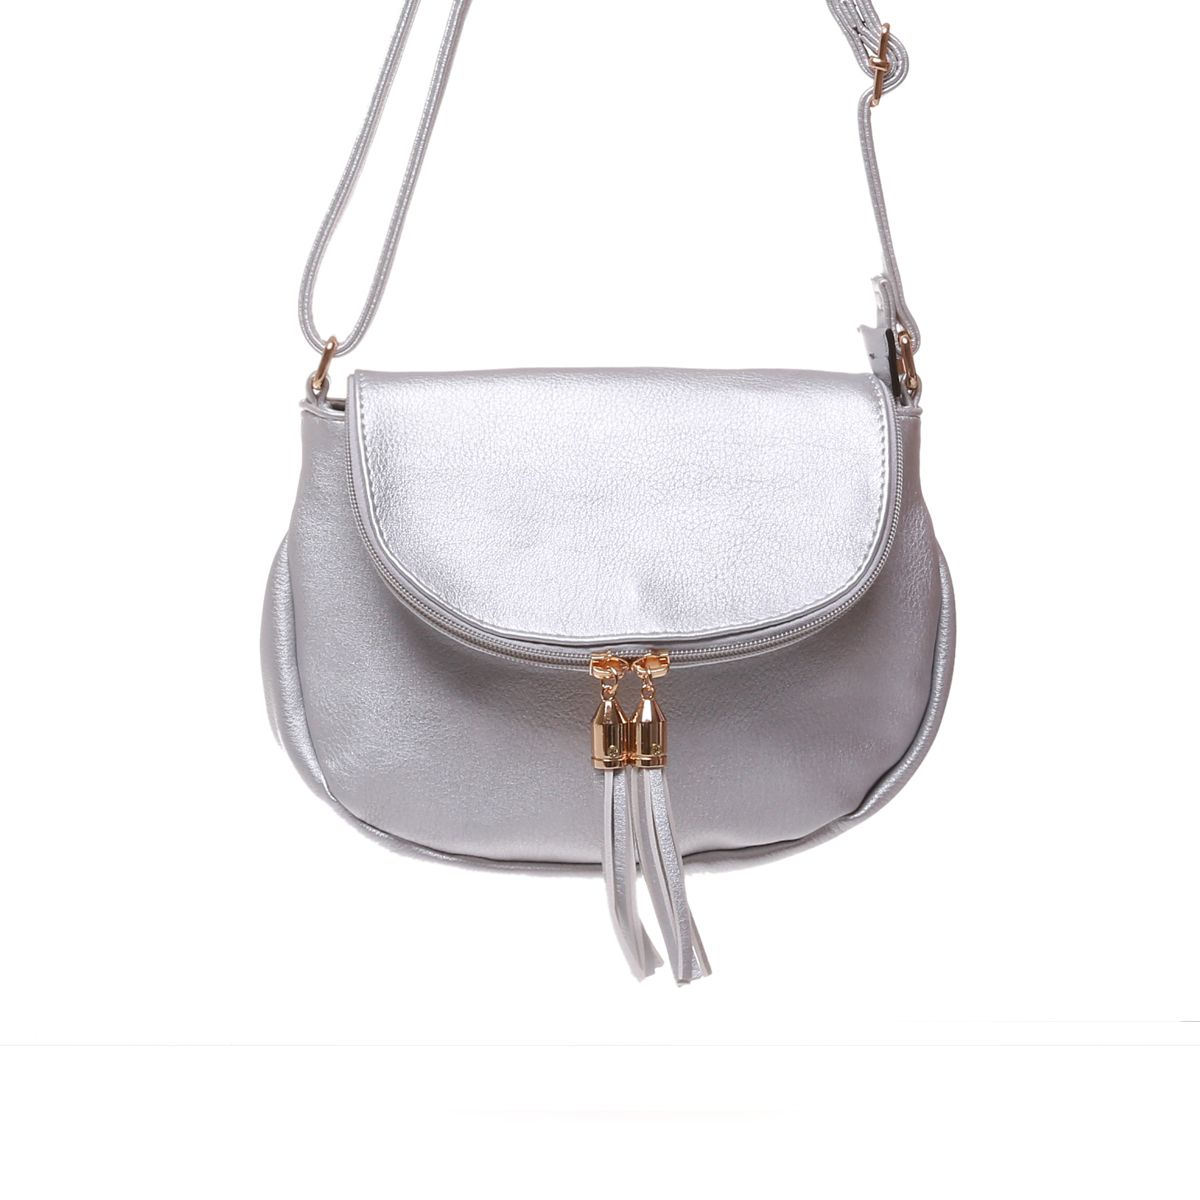 Sac besace Darling argent